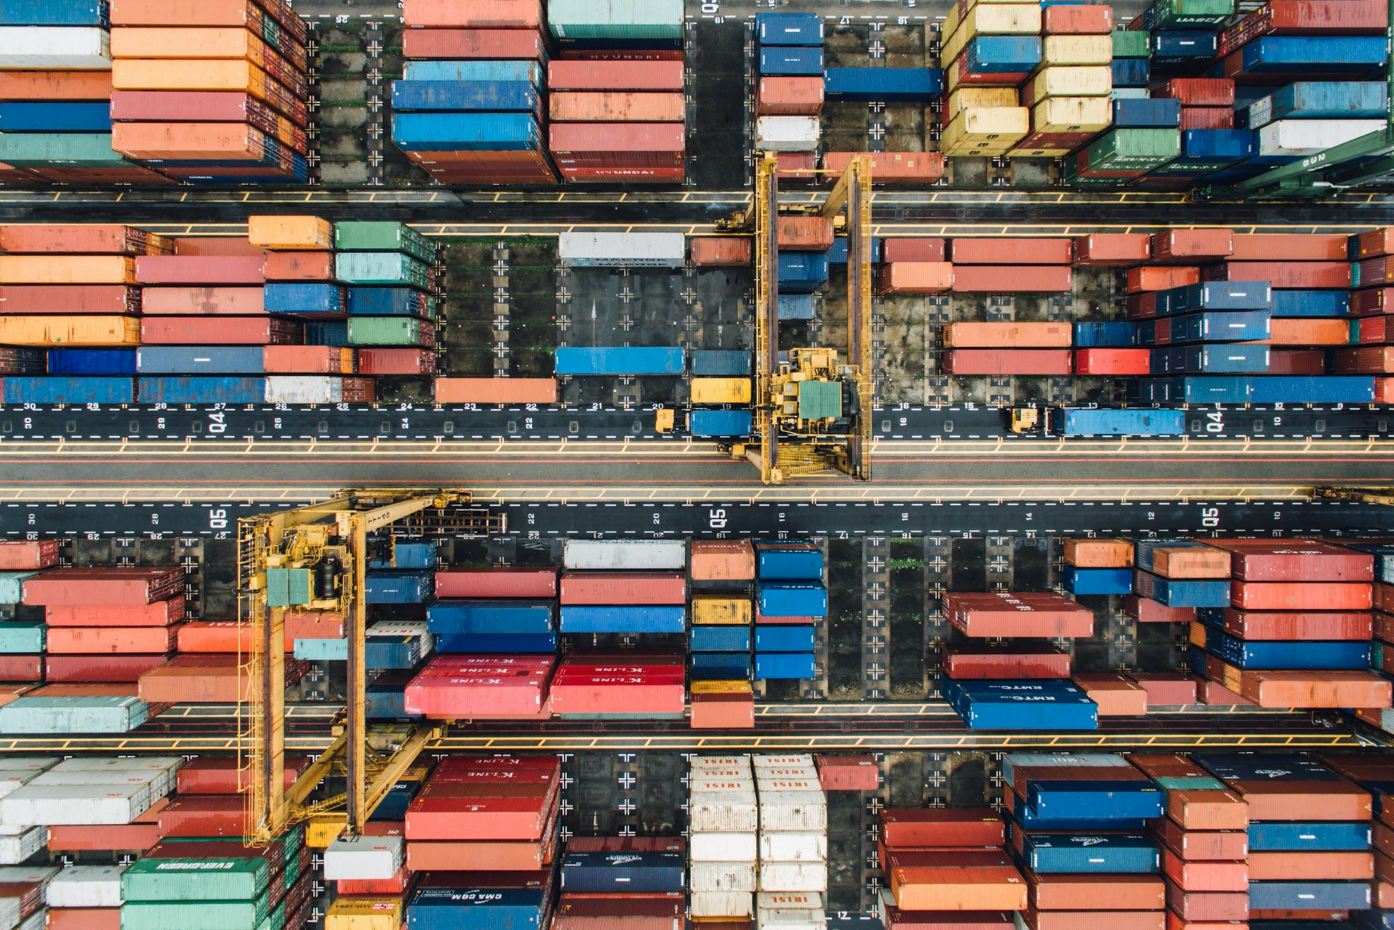 Aerial view of shipping containers; image by Chuttersnap, via Unsplash.com.